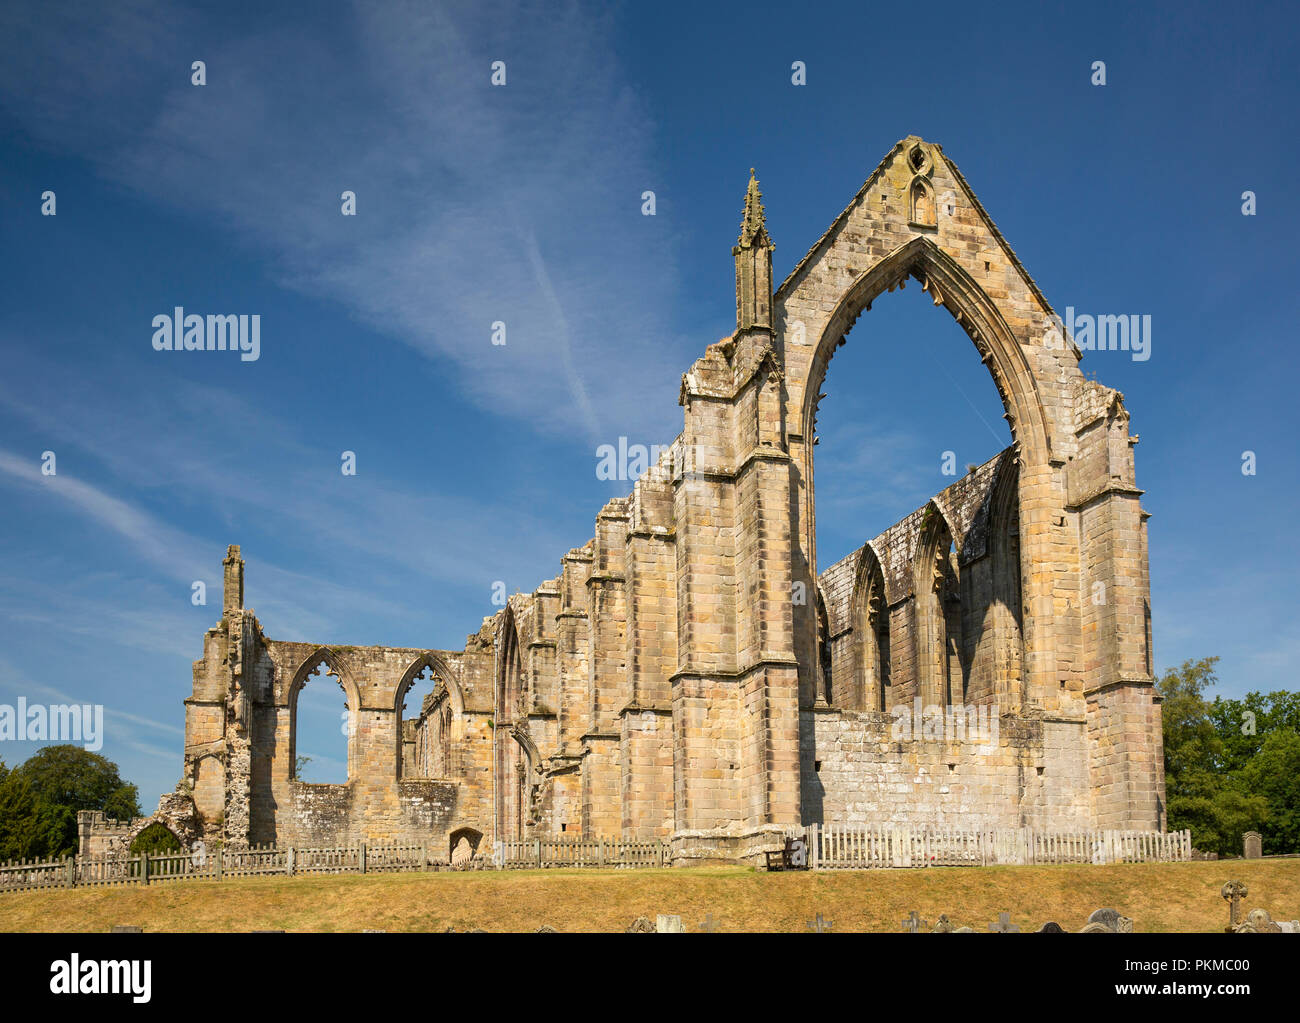 UK, Yorkshire, Wharfedale, Bolton Abbey, ruins of 1154 Augustinian Priory - Stock Image